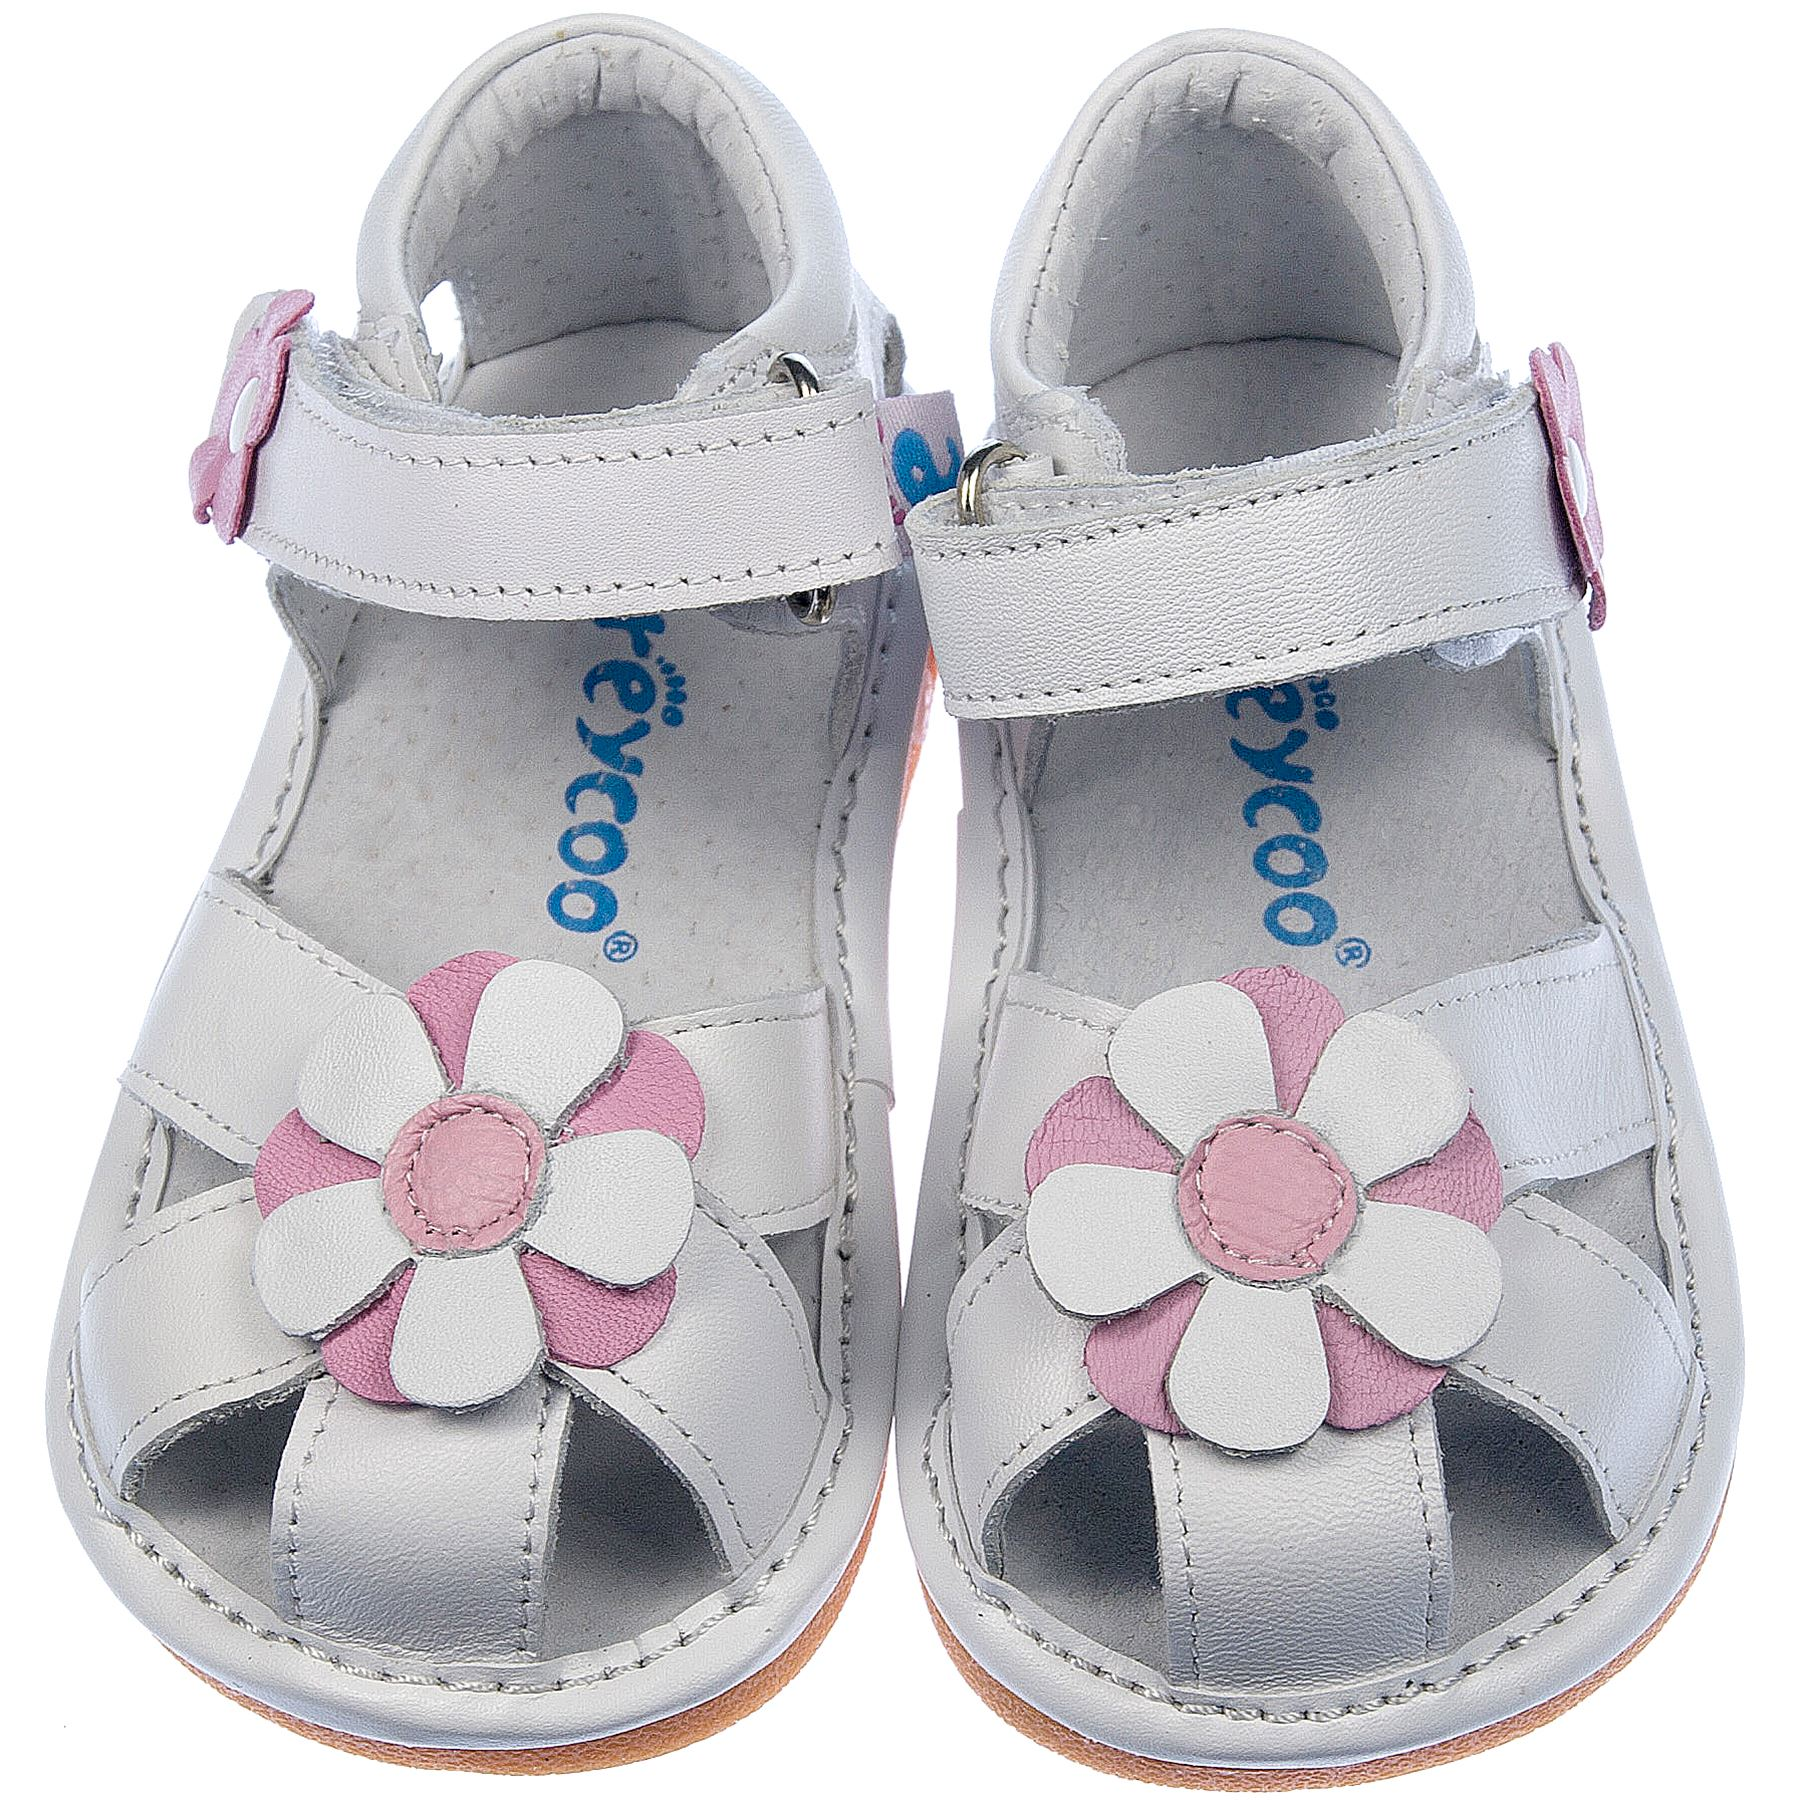 chaussures sandales fille b b enfant cuir v ritable cir blanc mat rose ebay. Black Bedroom Furniture Sets. Home Design Ideas